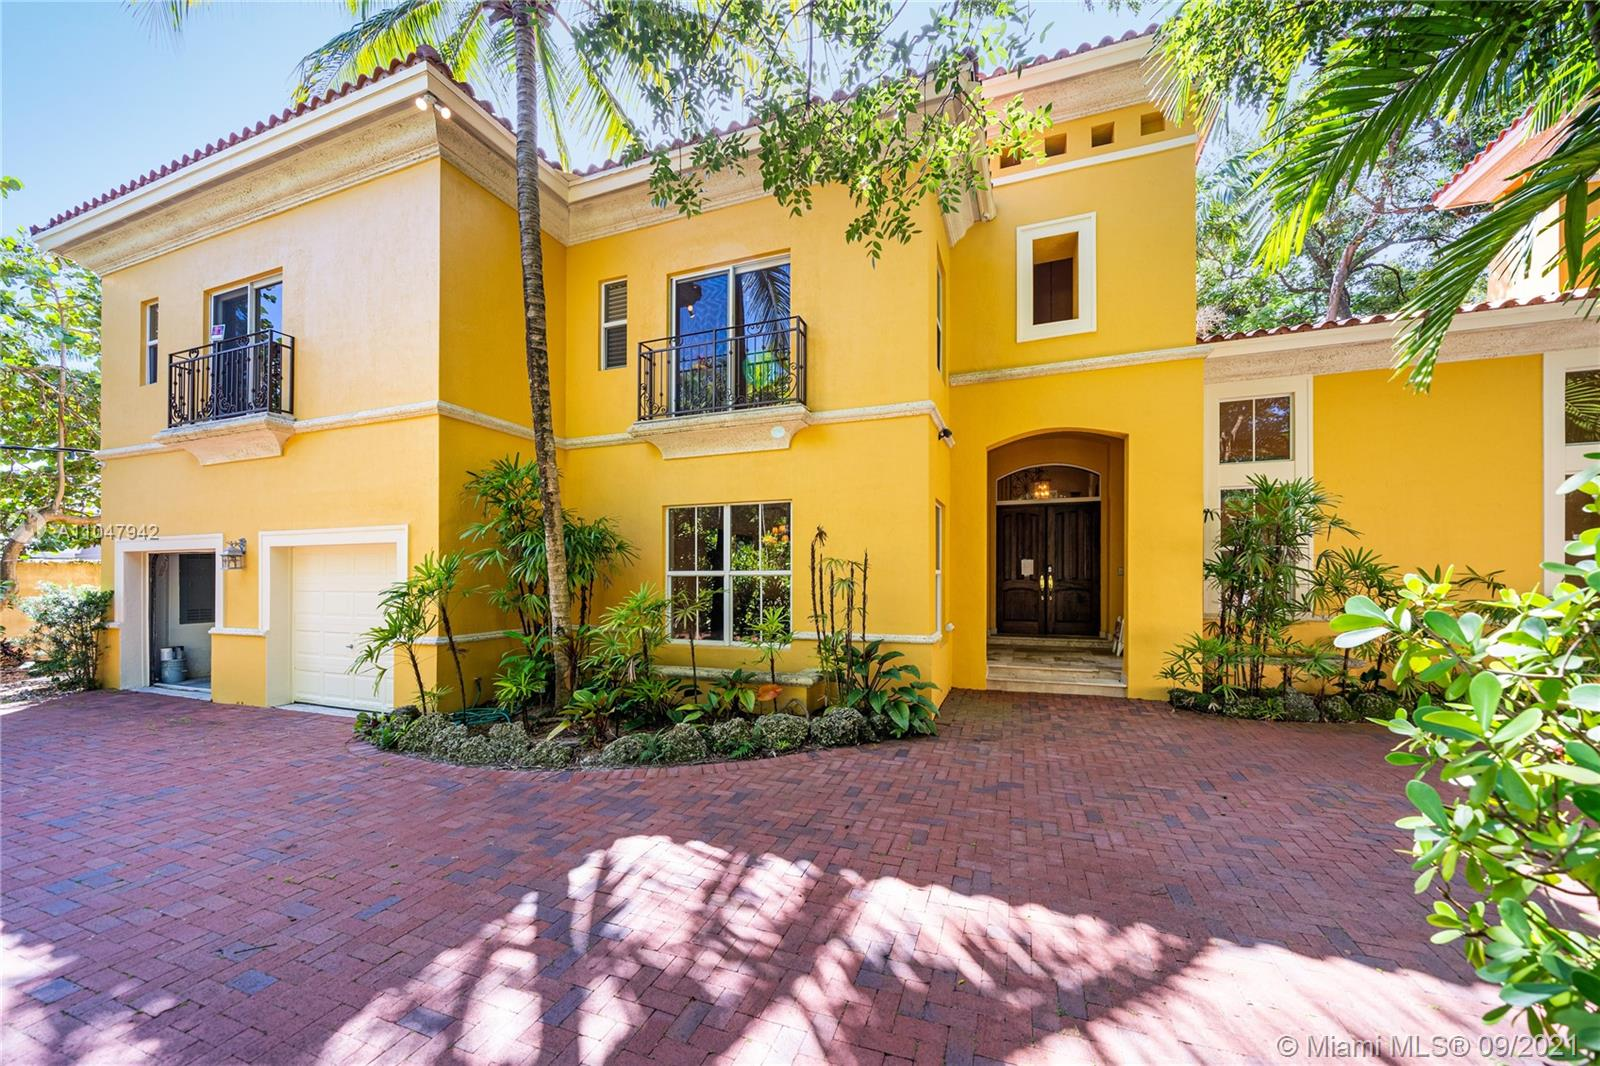 Property Overview - Elegant Italian-inspired villa in exclusive & gated De Garmo Estates. Drive through the majestic gates onto a winding road canopied by massive oaks. Light-filled living spaces with double-height ceilings & the finest finishes, including marble fireplace, coffered & tray ceilings, and extensive millwork throughout. Expansive custom kitchen and family room open to covered terrace & pool surrounded by lush botanical gardens. Close to the Grove village centers, boutiques, cafes, and bay front parks & marinas.  HOUSE CAN BE SOLD FURNISHED